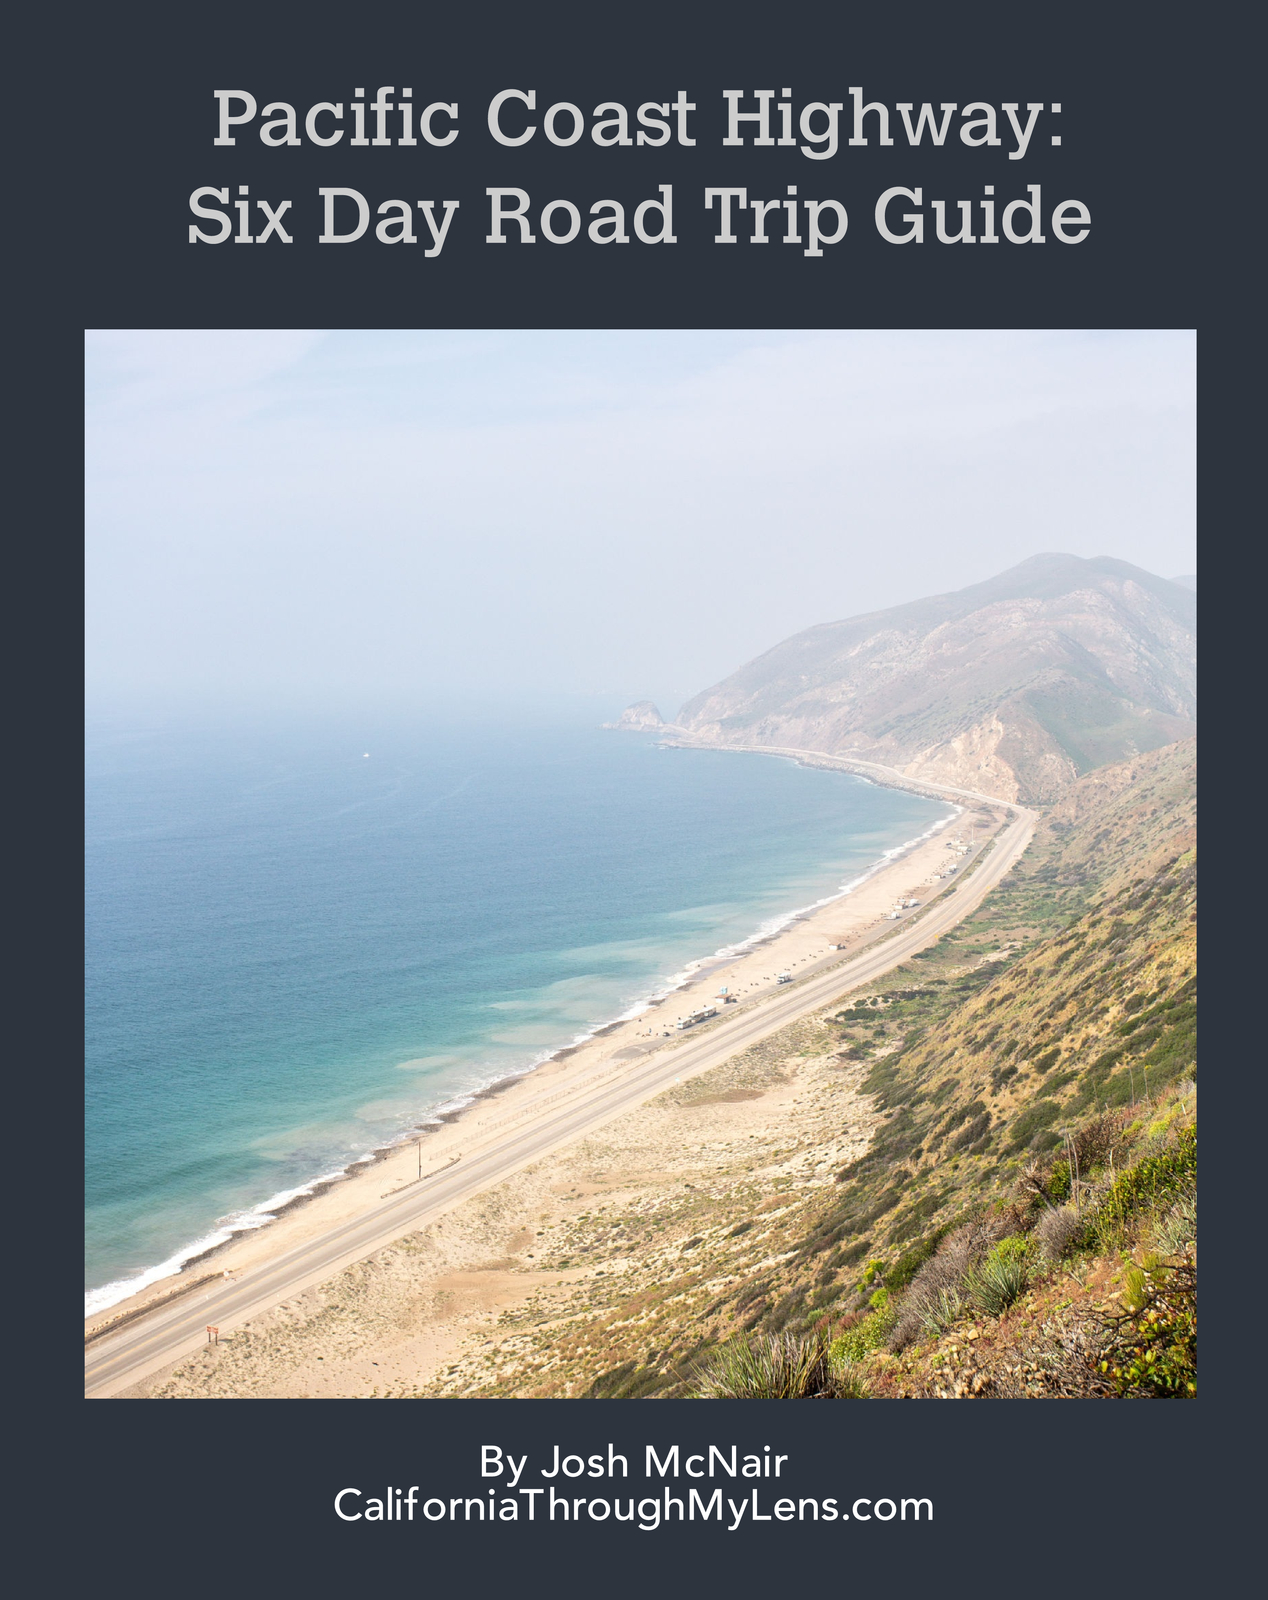 Pacific Coast Highway: Six Day Road Trip Guide Ebook by